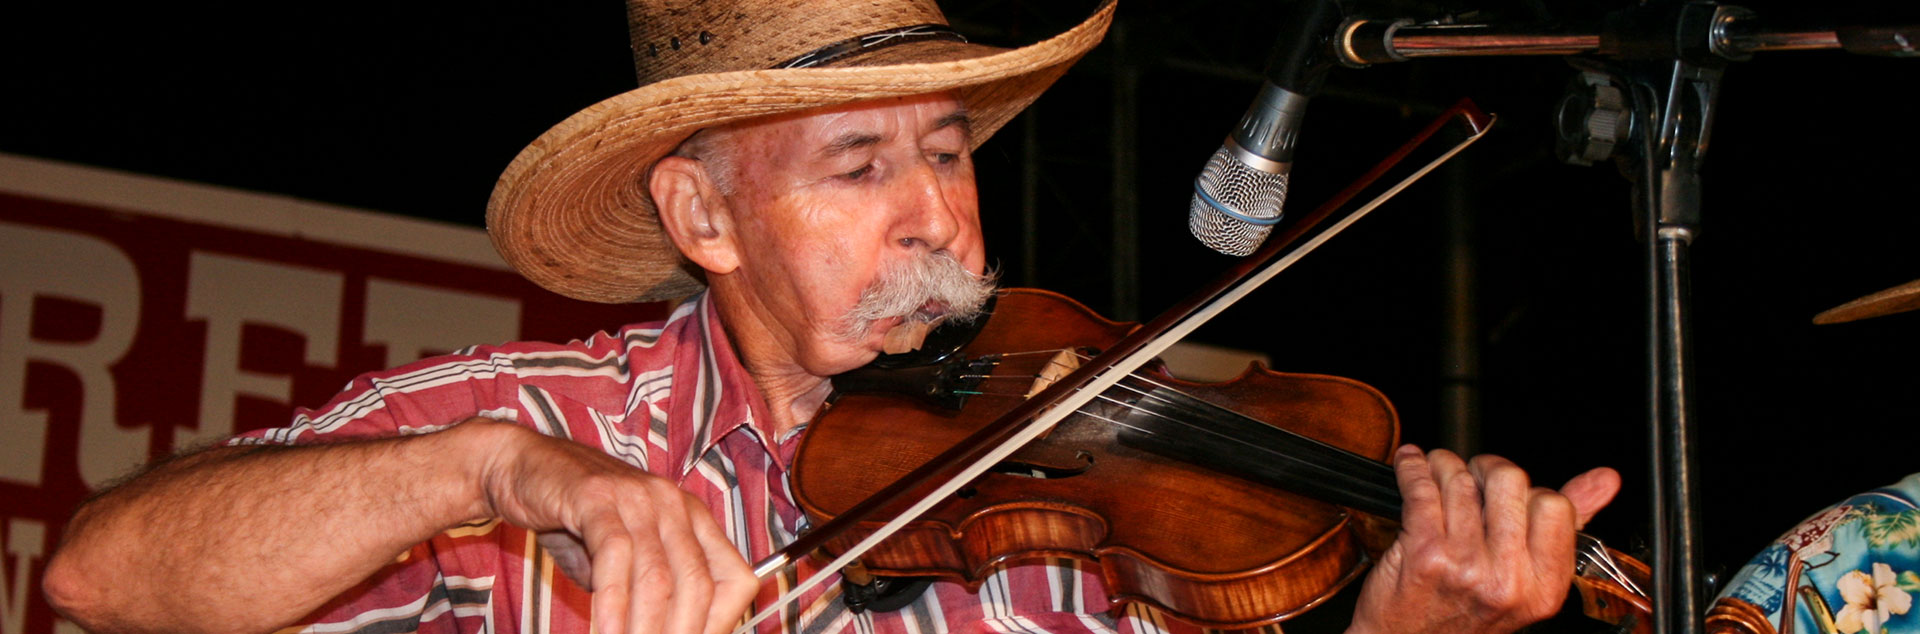 Man playing Fiddle